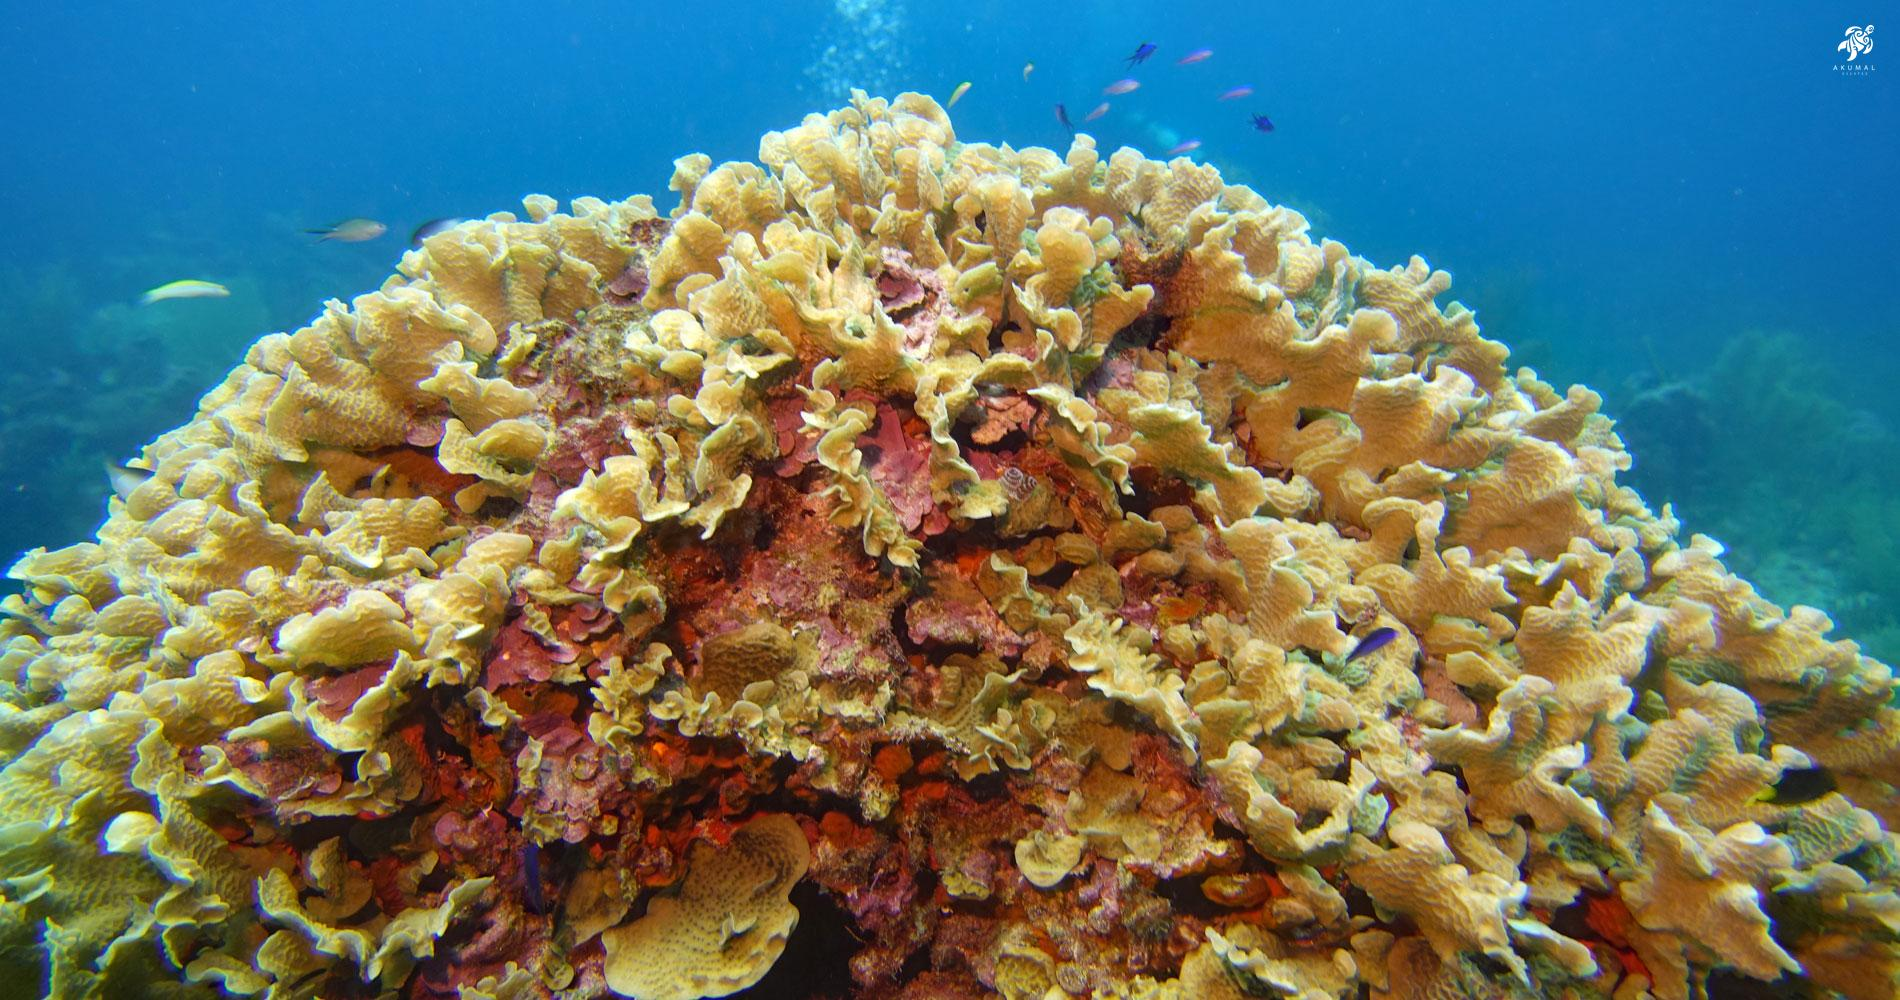 Underwater on the Meso-American reef: A giant coral mass is home to many colorful small reef fish